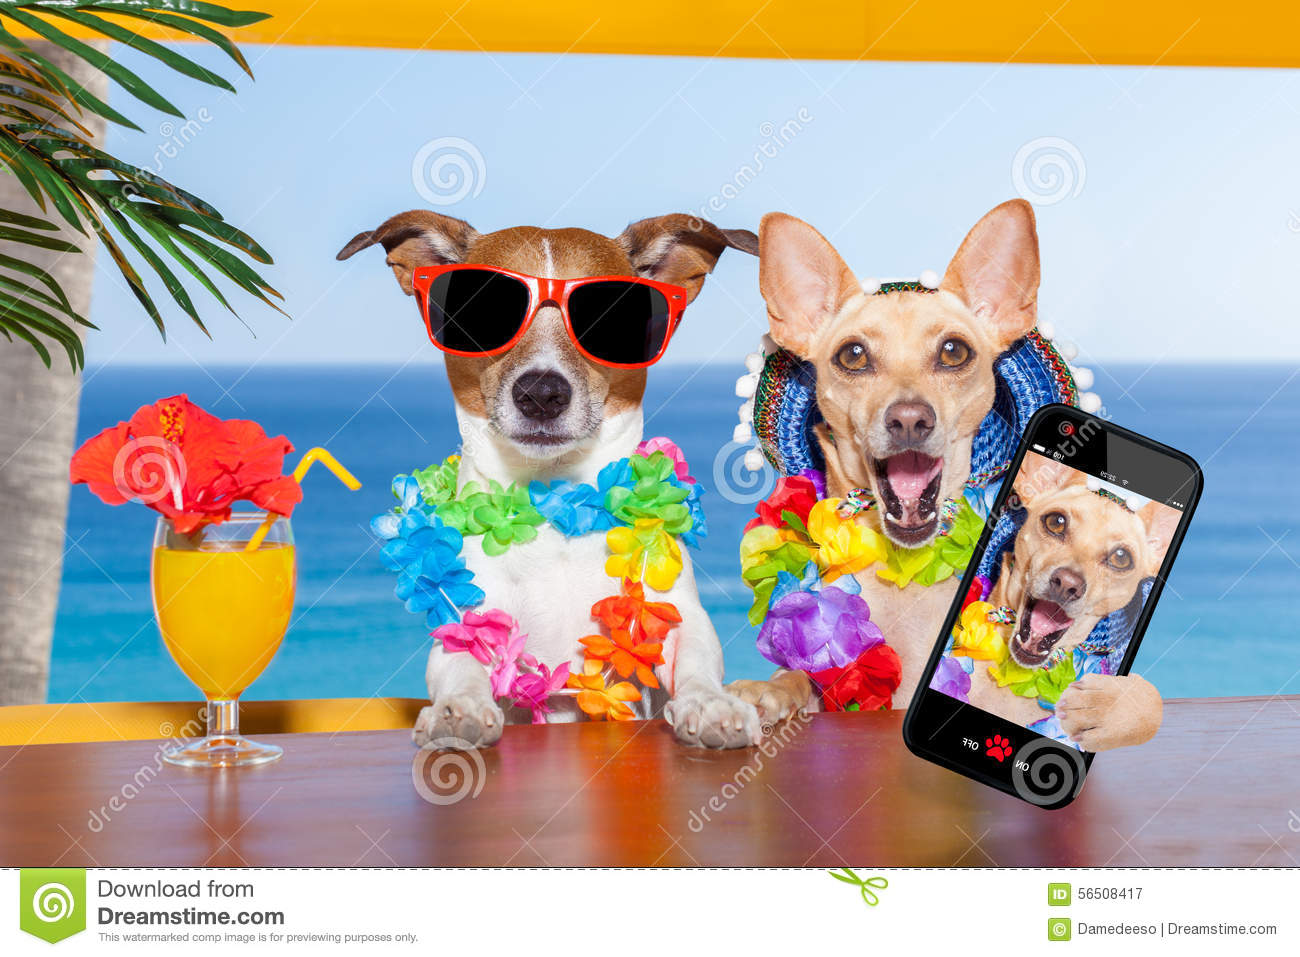 Drunk Dogs Stock Photo - Image: 56508417 Relaxing Dog Music Audio